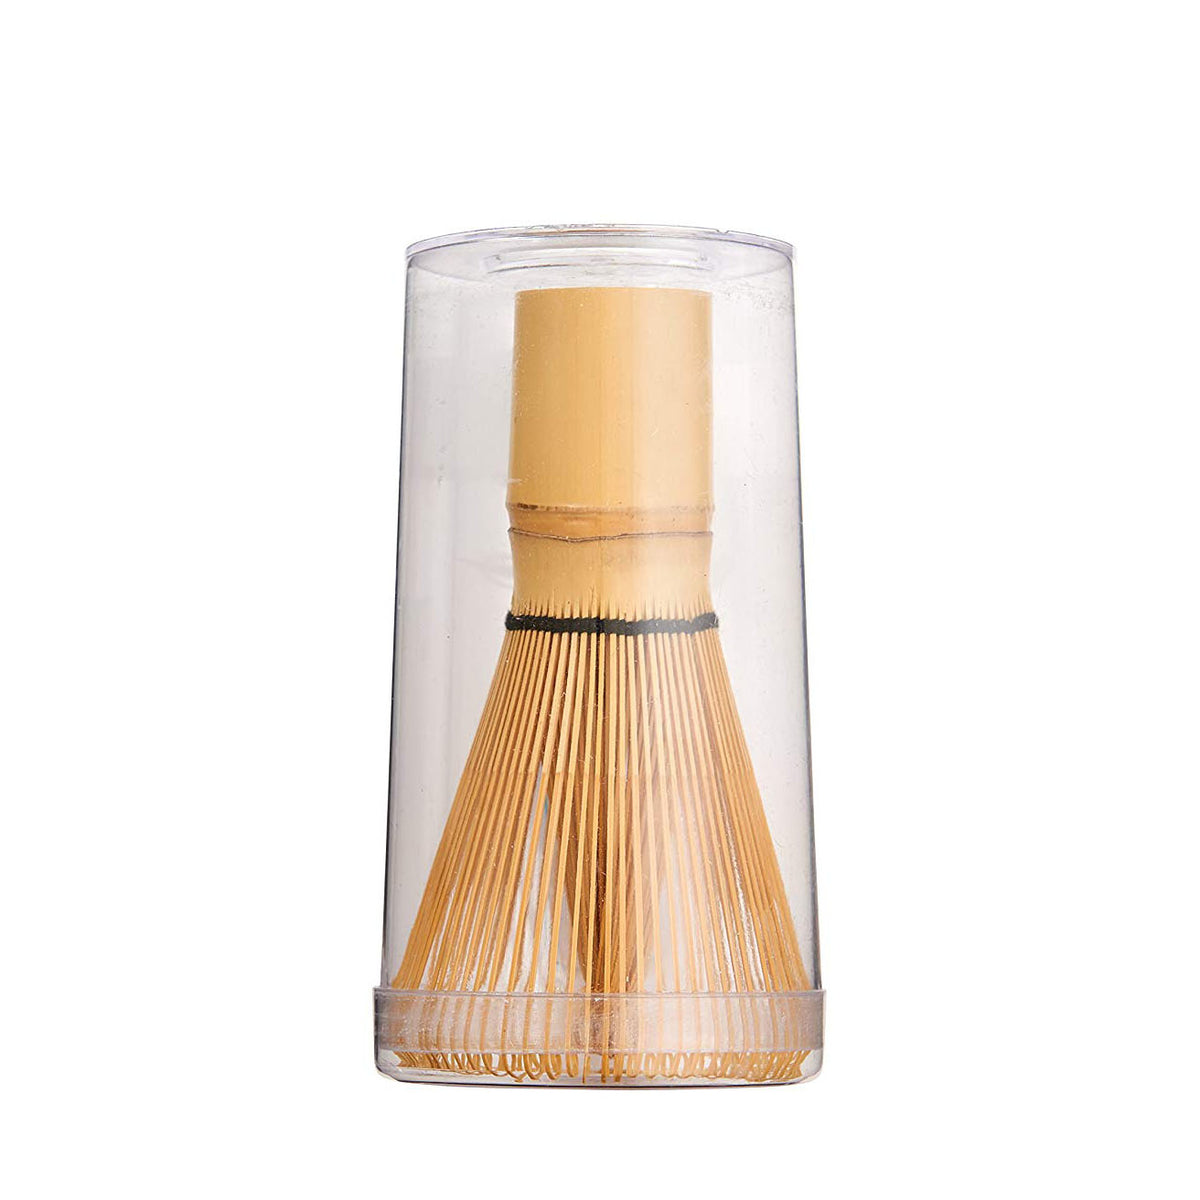 Bamboo Matcha Tea Whisk - Teaware - Red Stick Spice Company